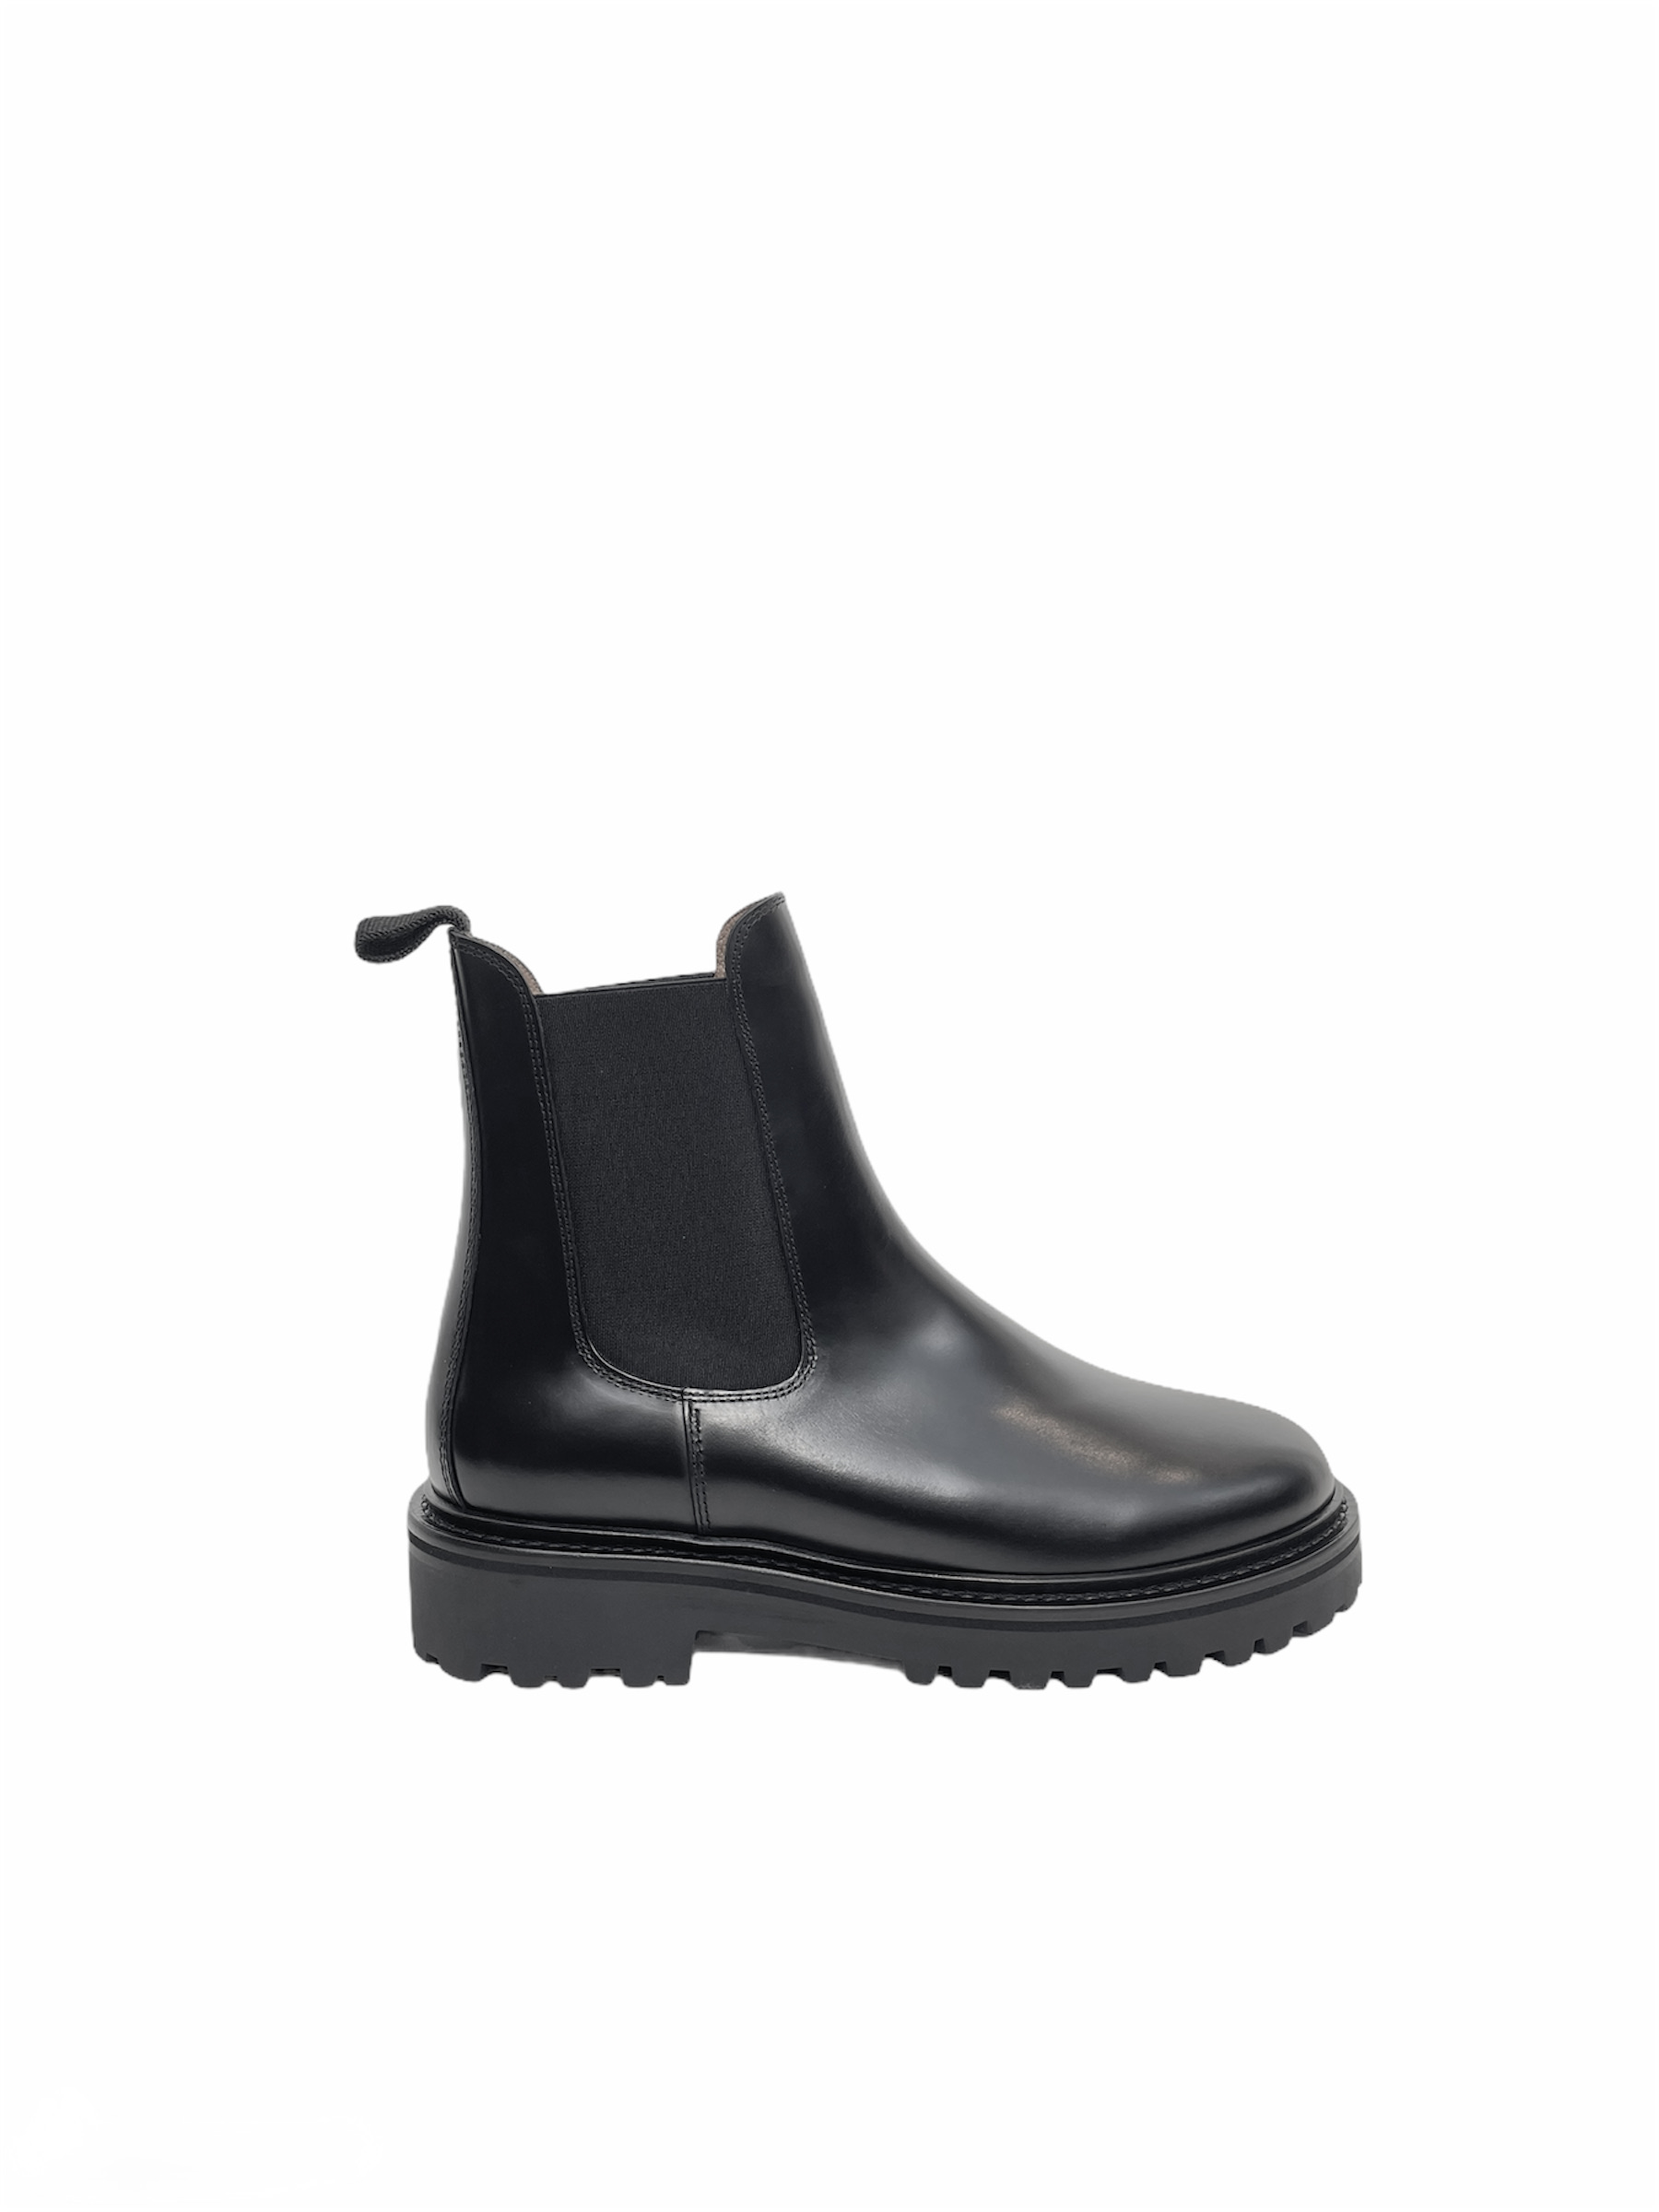 Boots, Castay, Isabel Marant, Chelsea Boots